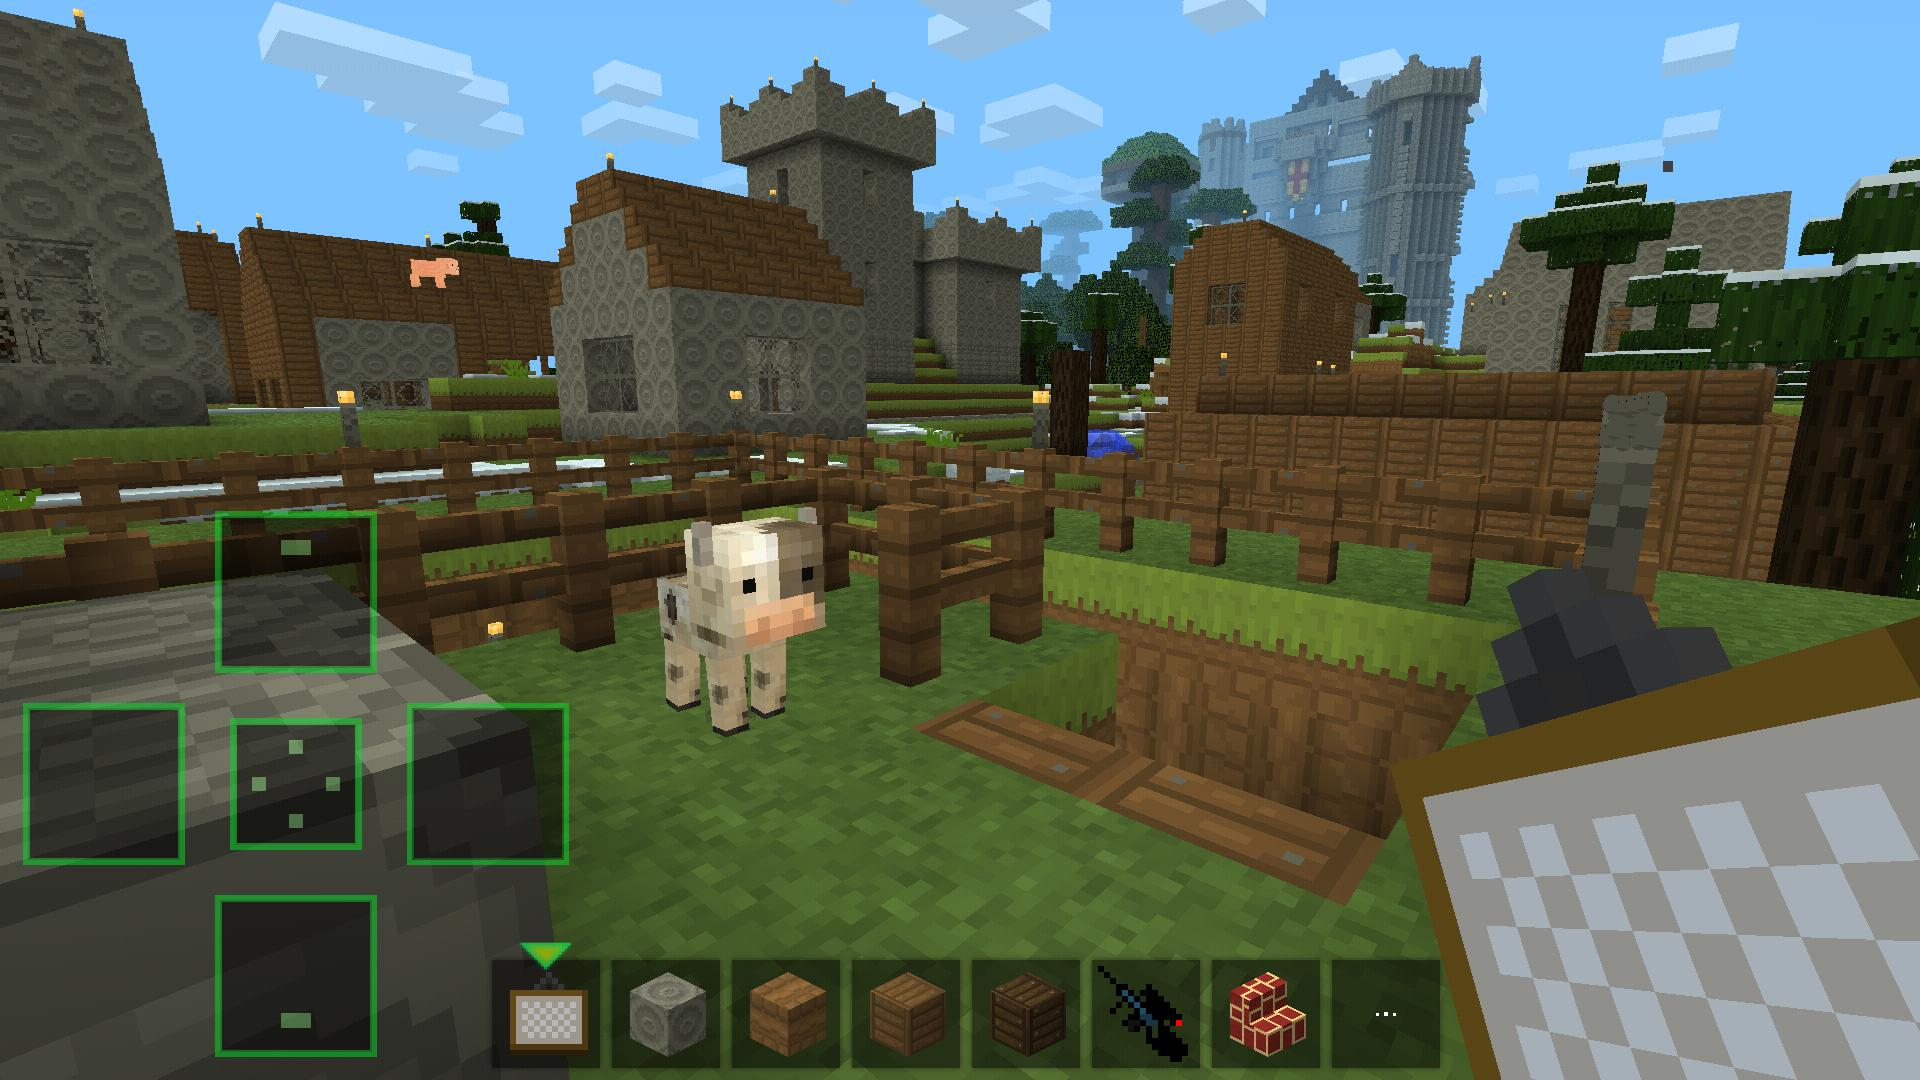 Btools Build To Survive Roblox Mini Craft Build Survival For Android Apk Download